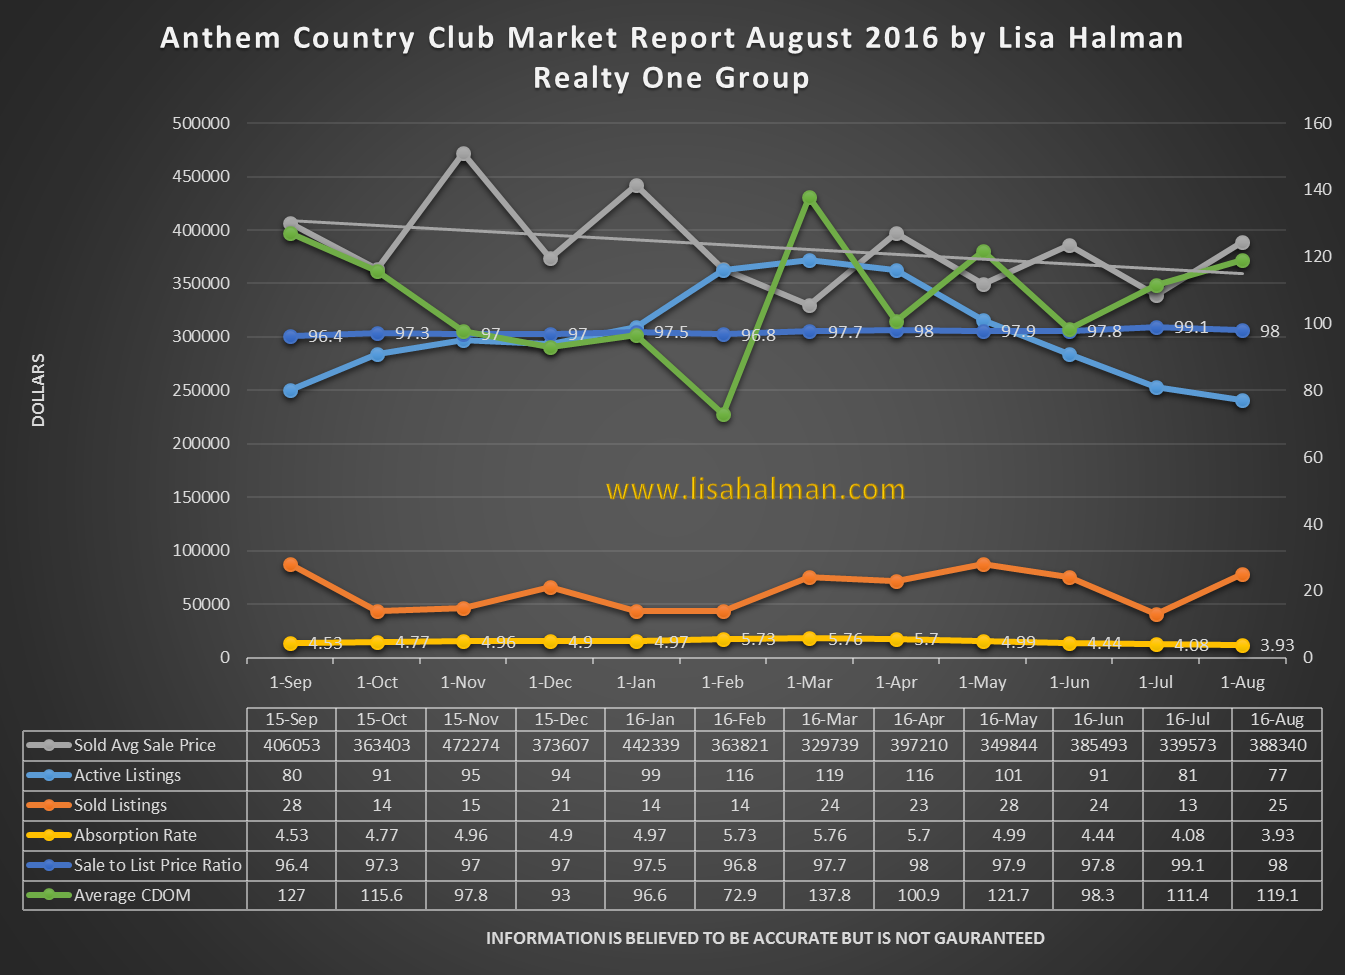 Anthem Country Club Market Report August 2016